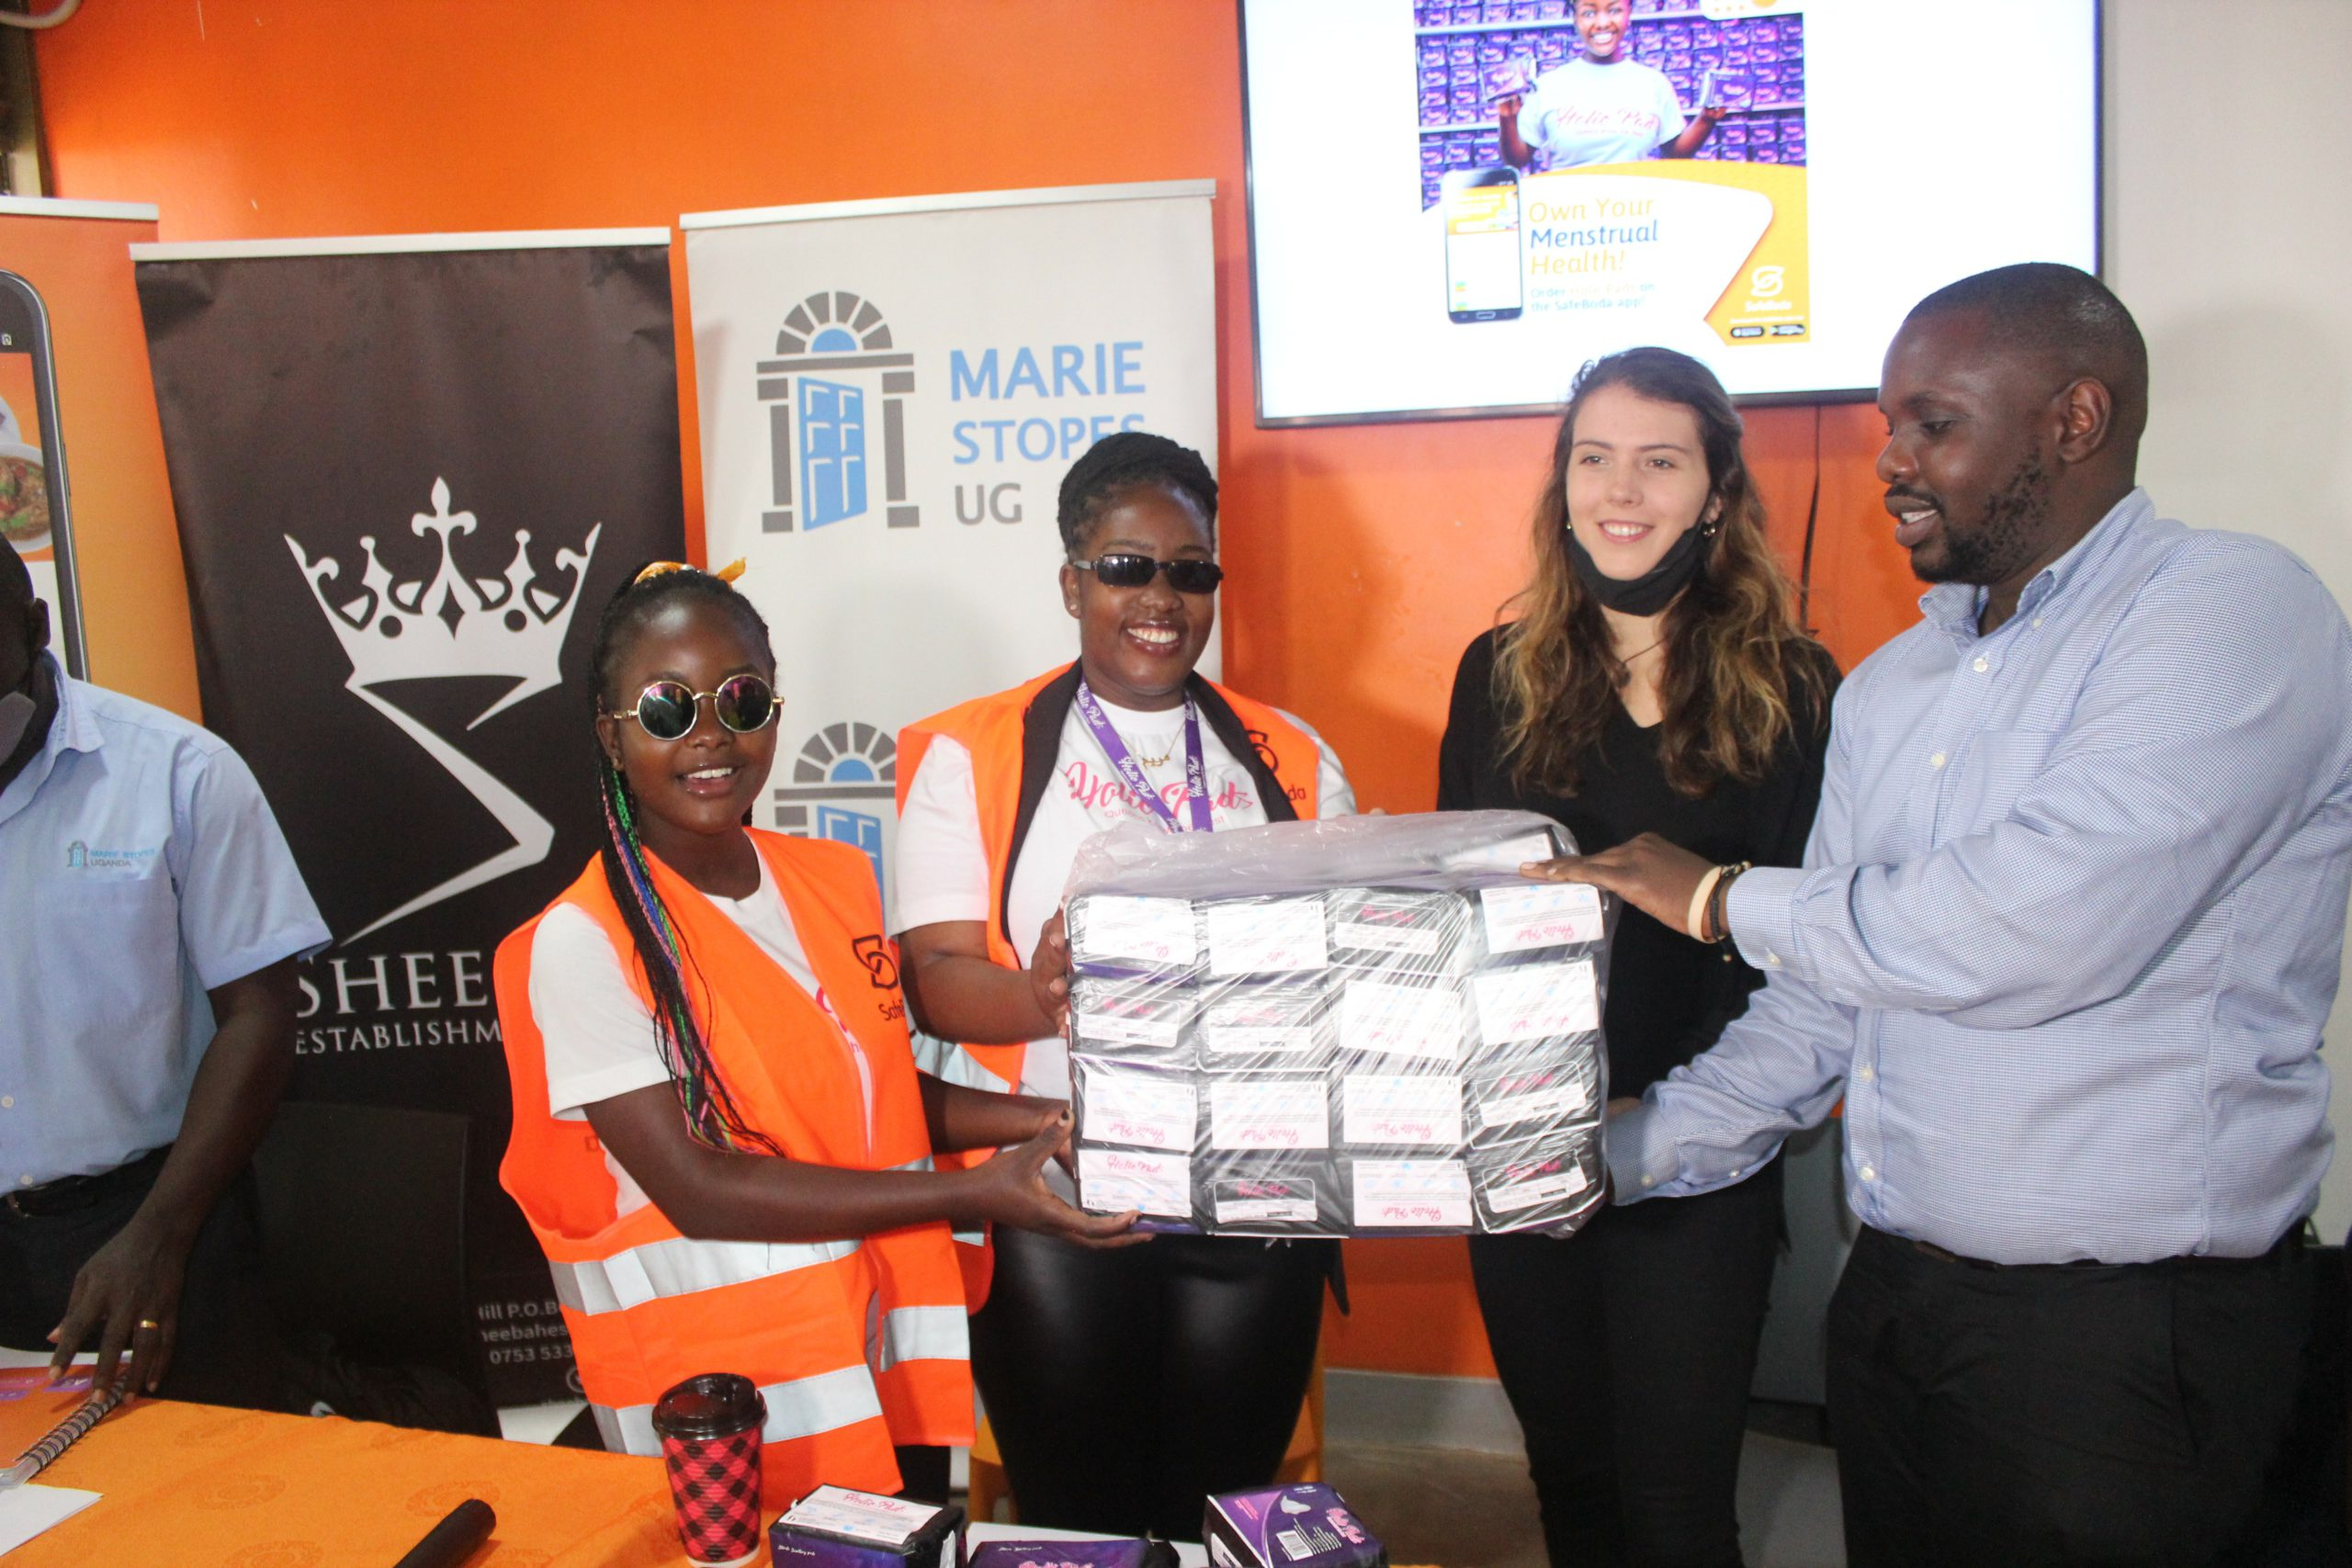 SafeBoda and UNFPA seek to solve menstrual-related challenges in 'My Menstrual Health' campaign 1 MUGIBSON WRITES